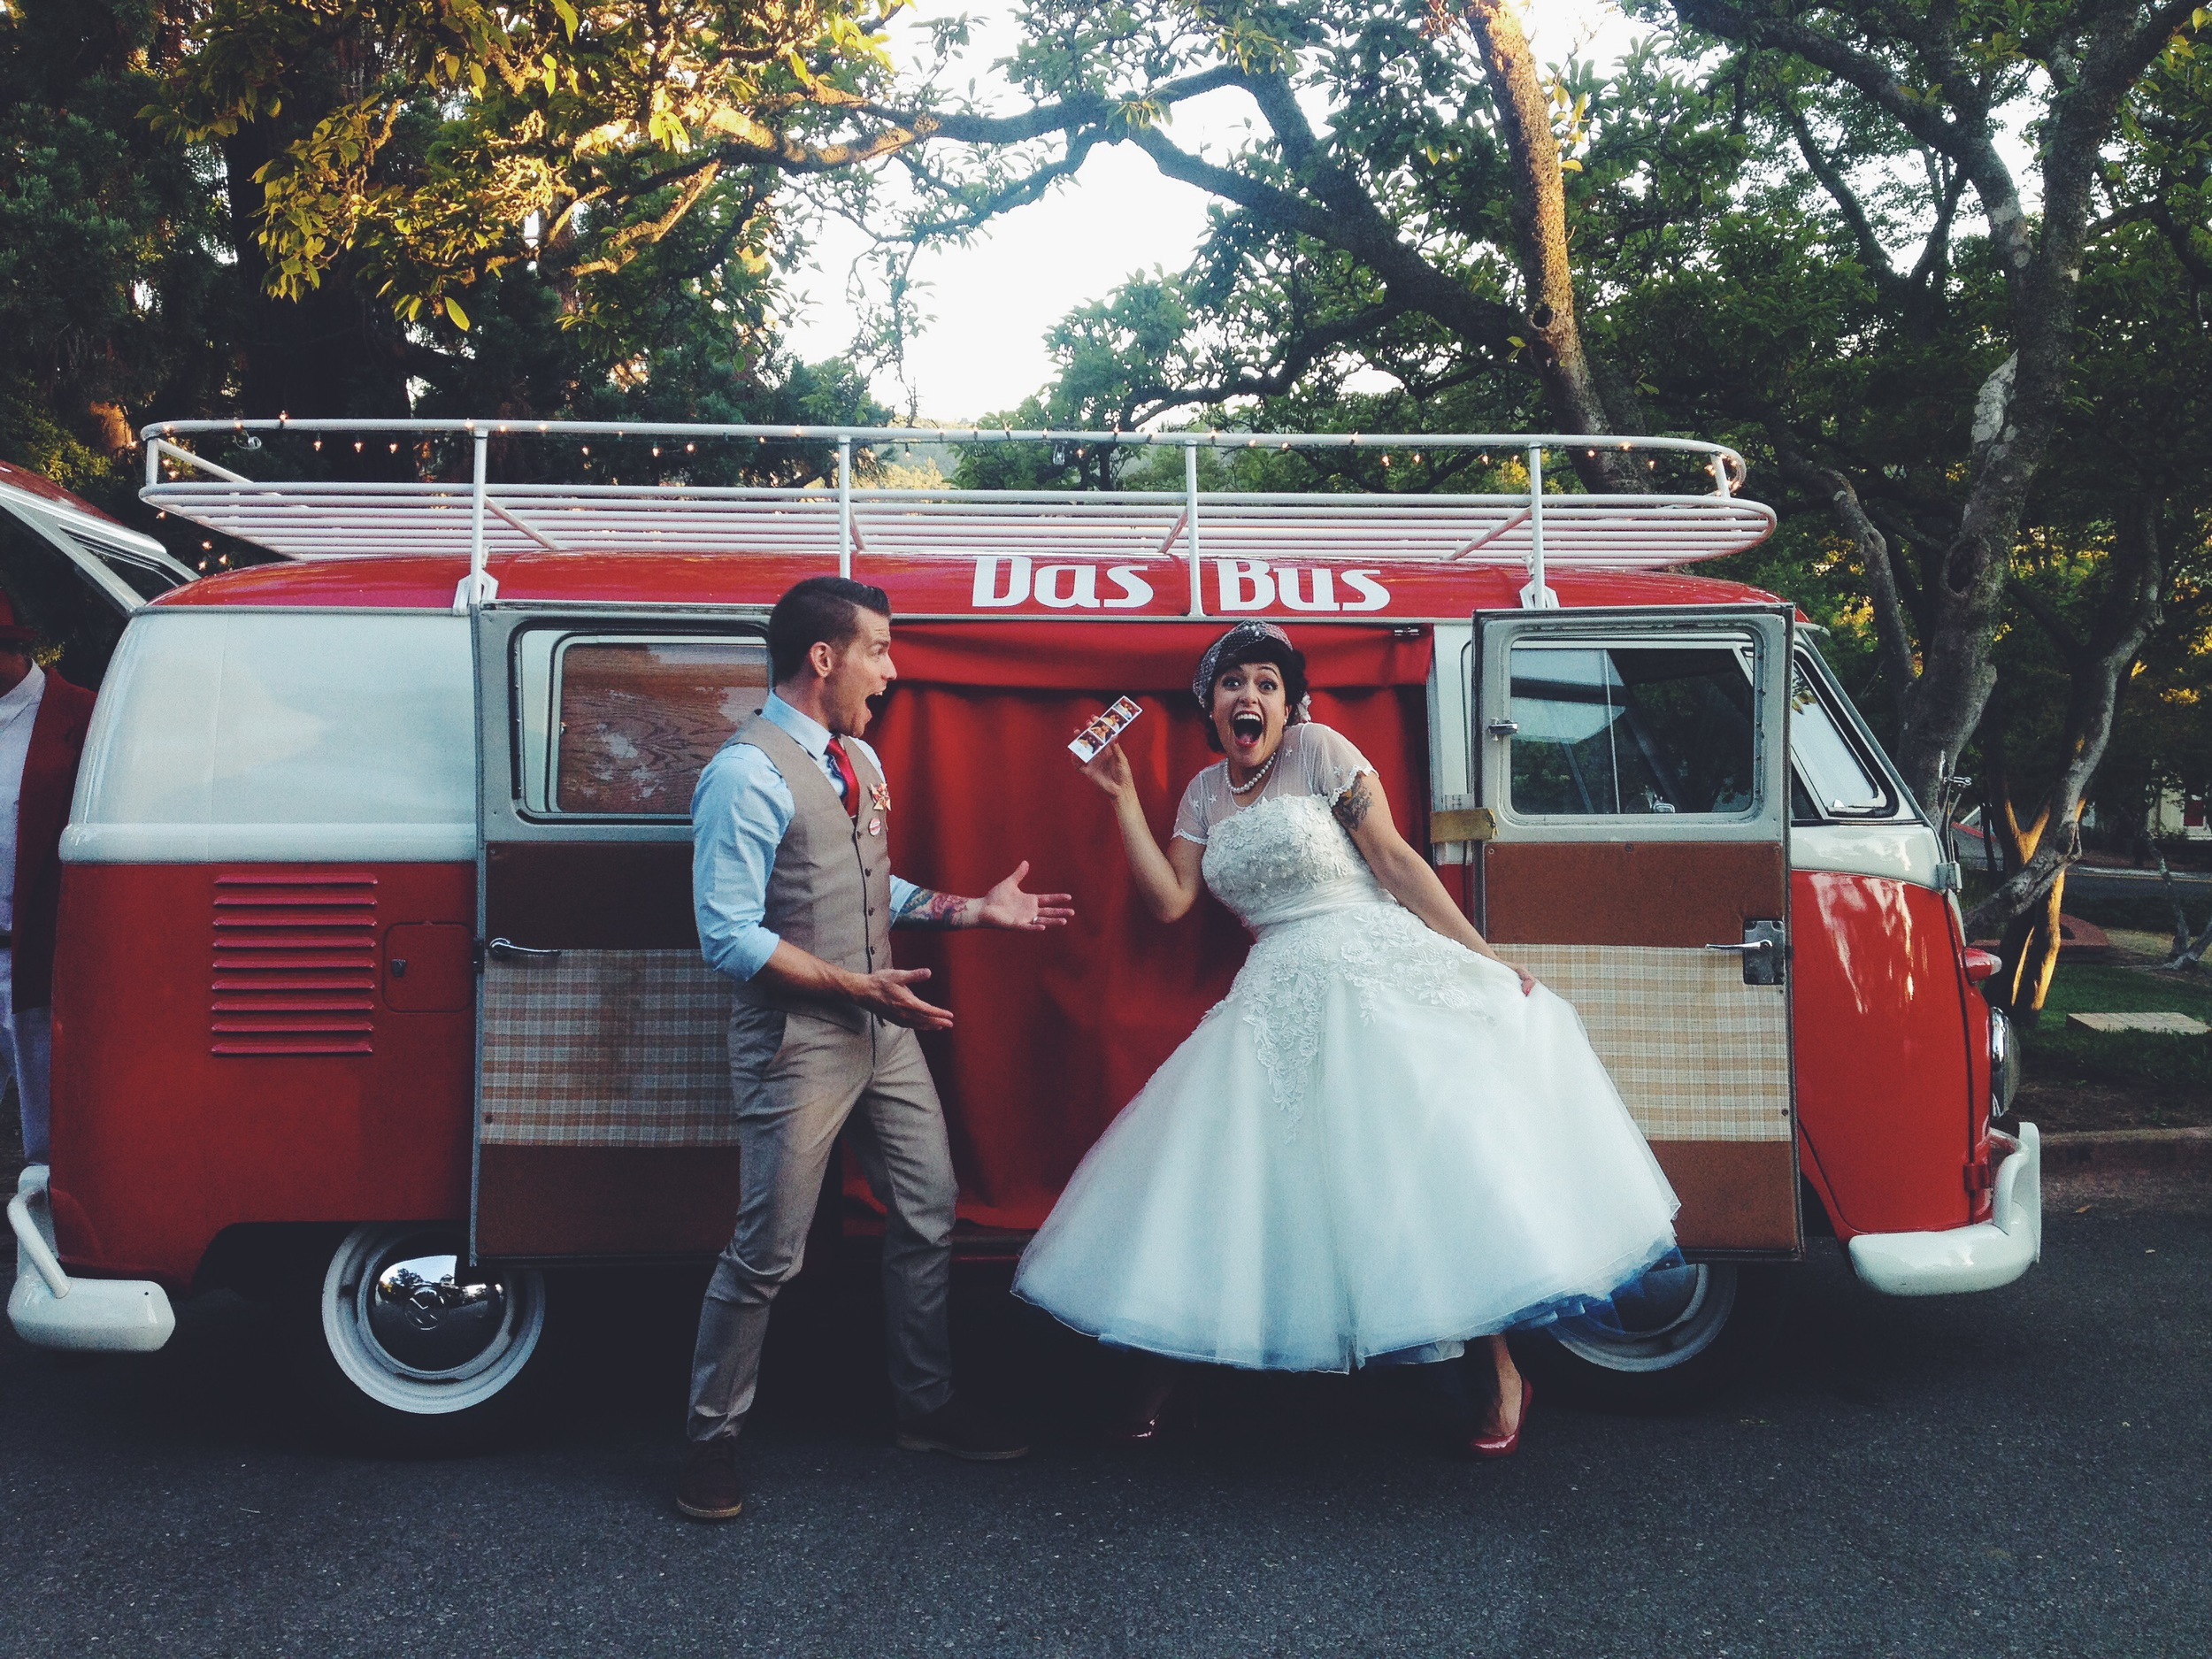 Alana and Ryan in San Rafael, CA. July, 2014. #thatdressthough